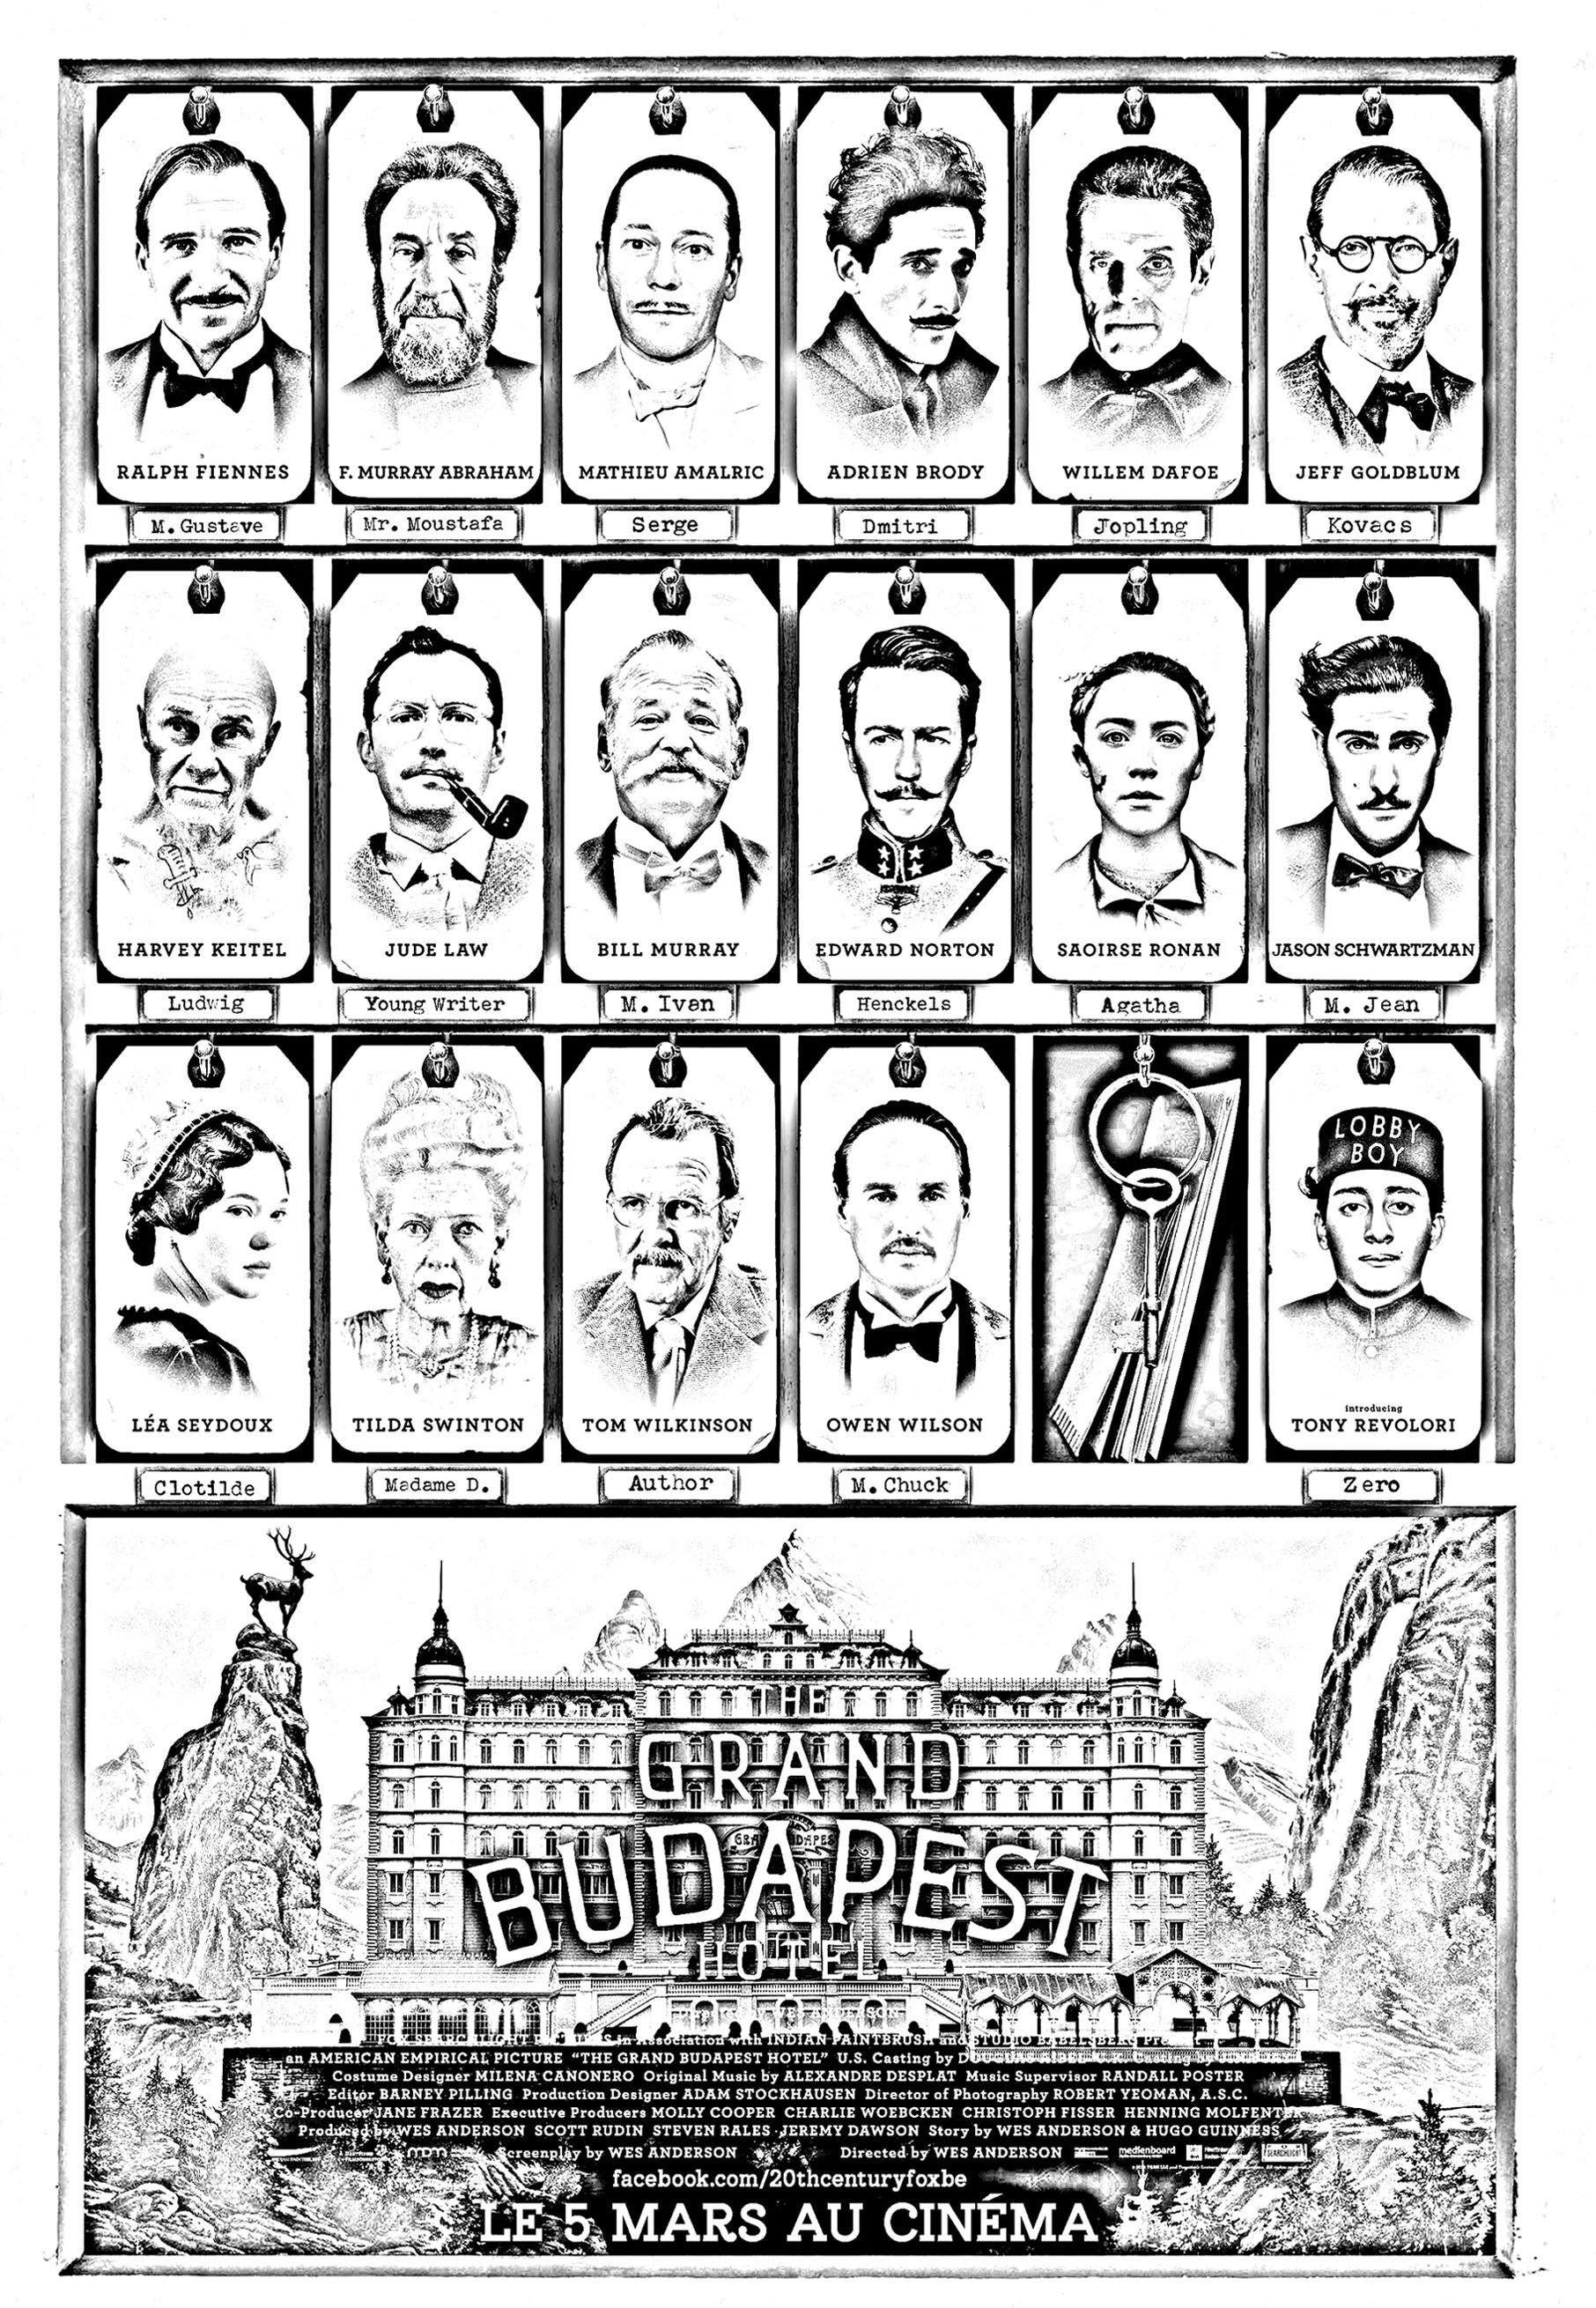 Movie the grand budapest hotel | Movies - Coloring pages ... Kids Movie Posters